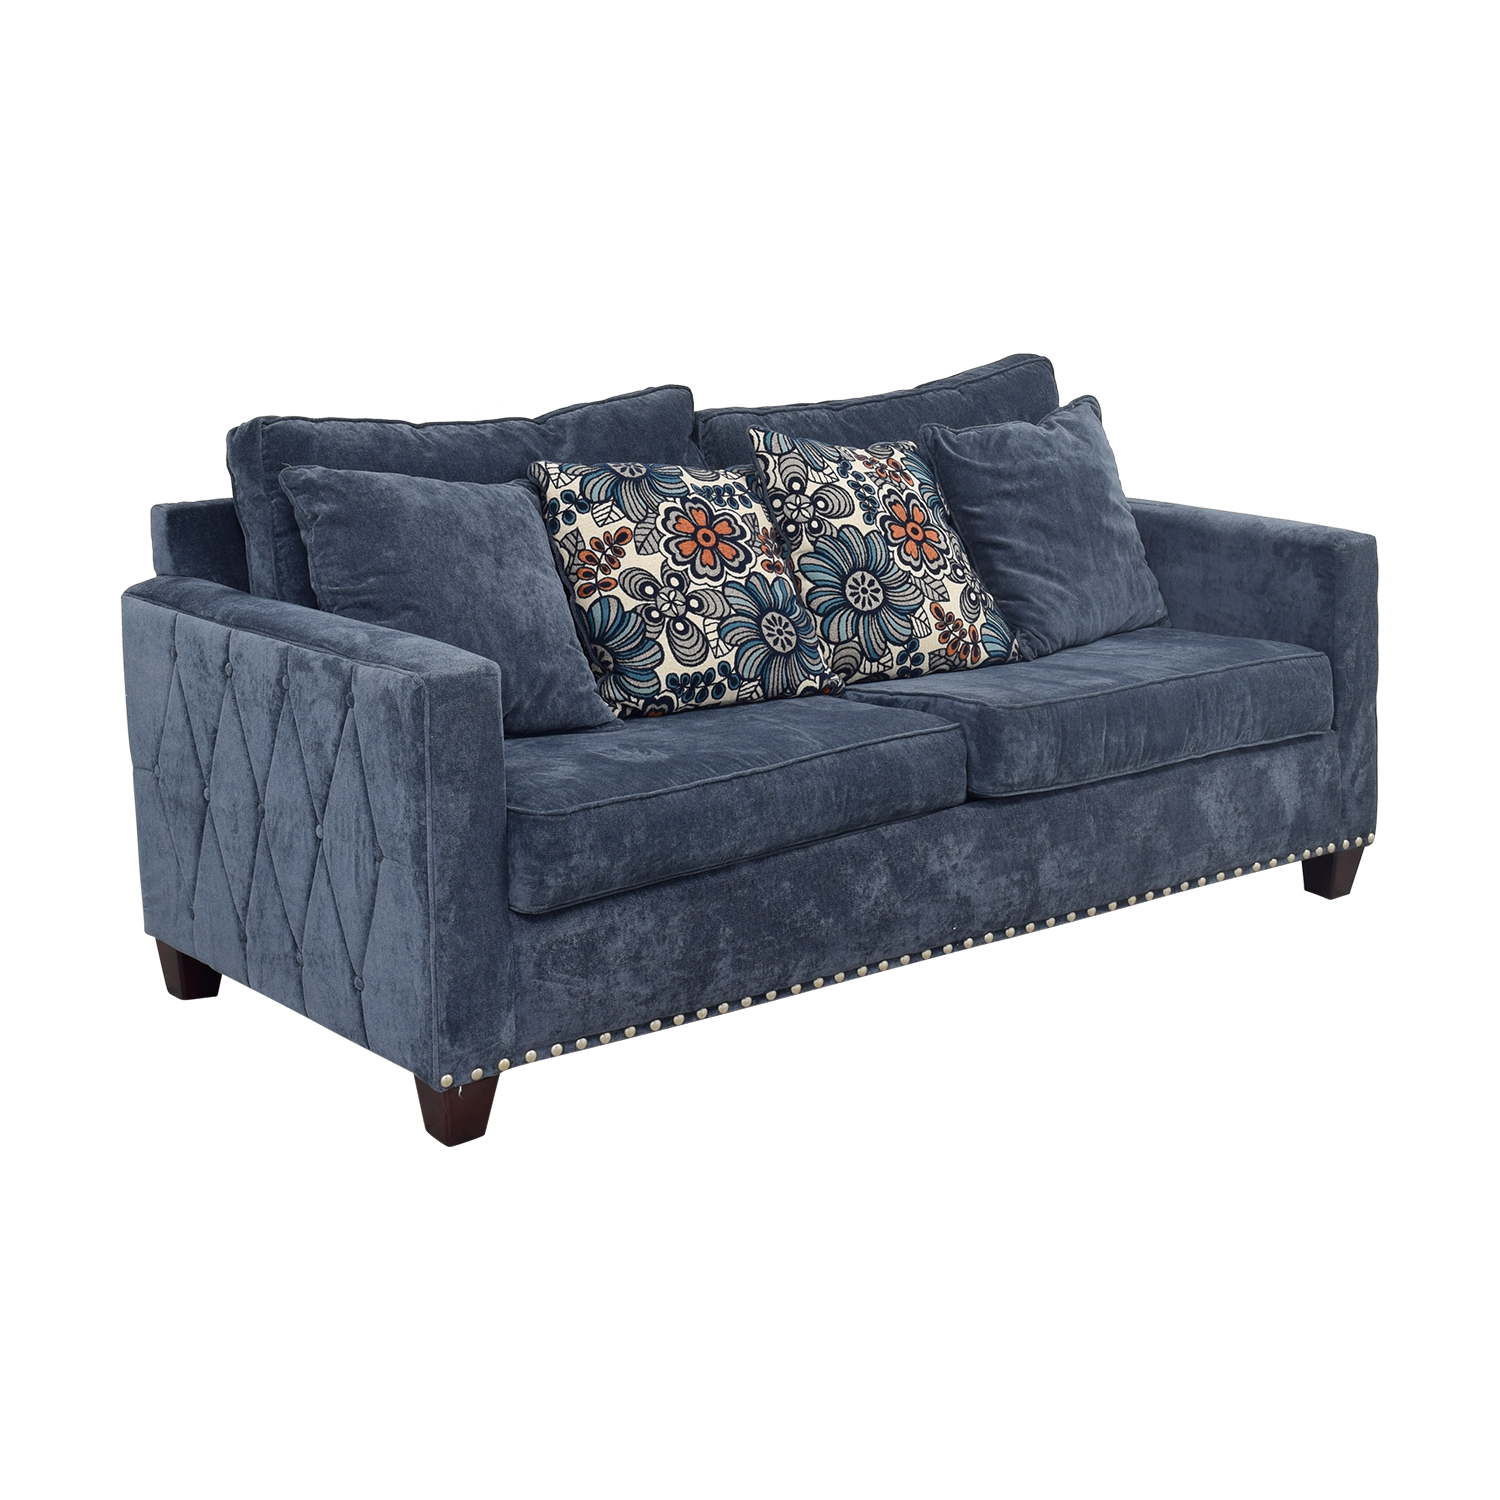 43 Off Bob S Furniture Bob S Furniture Melanie Navy